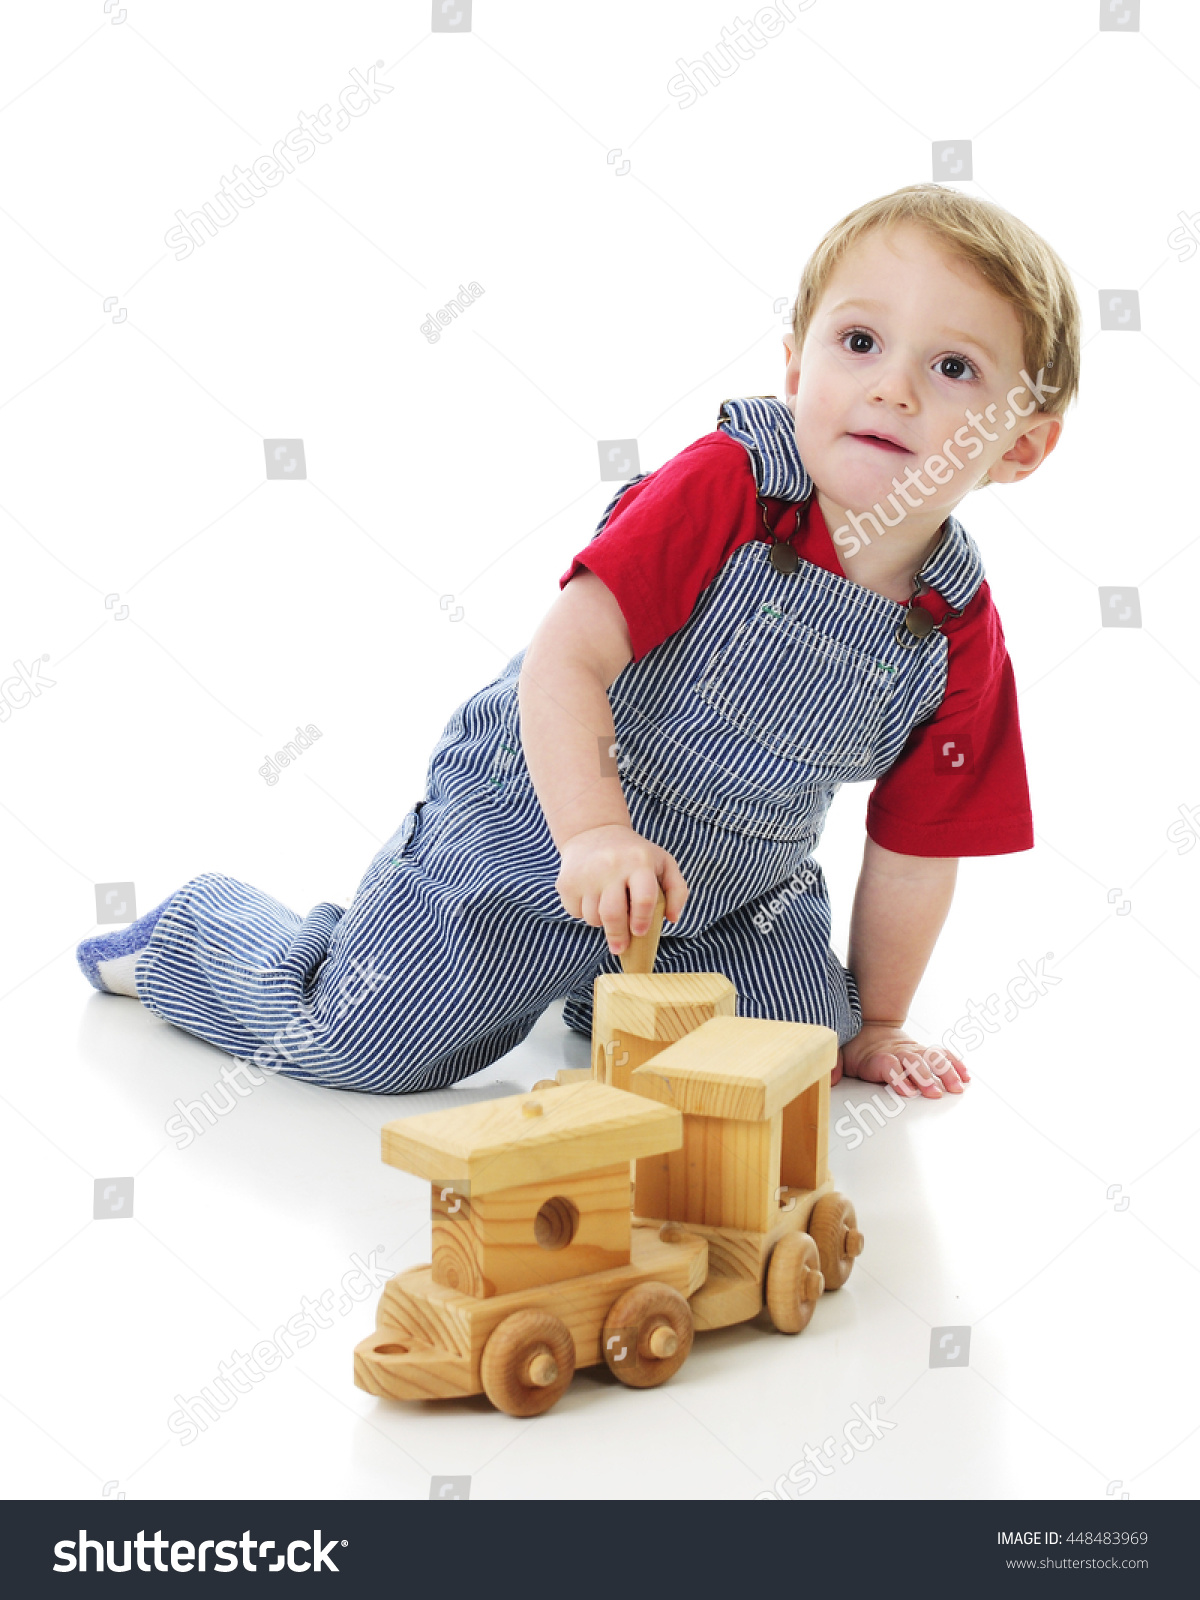 Adorable 2yearold Engineer Overalls Looking He Stock